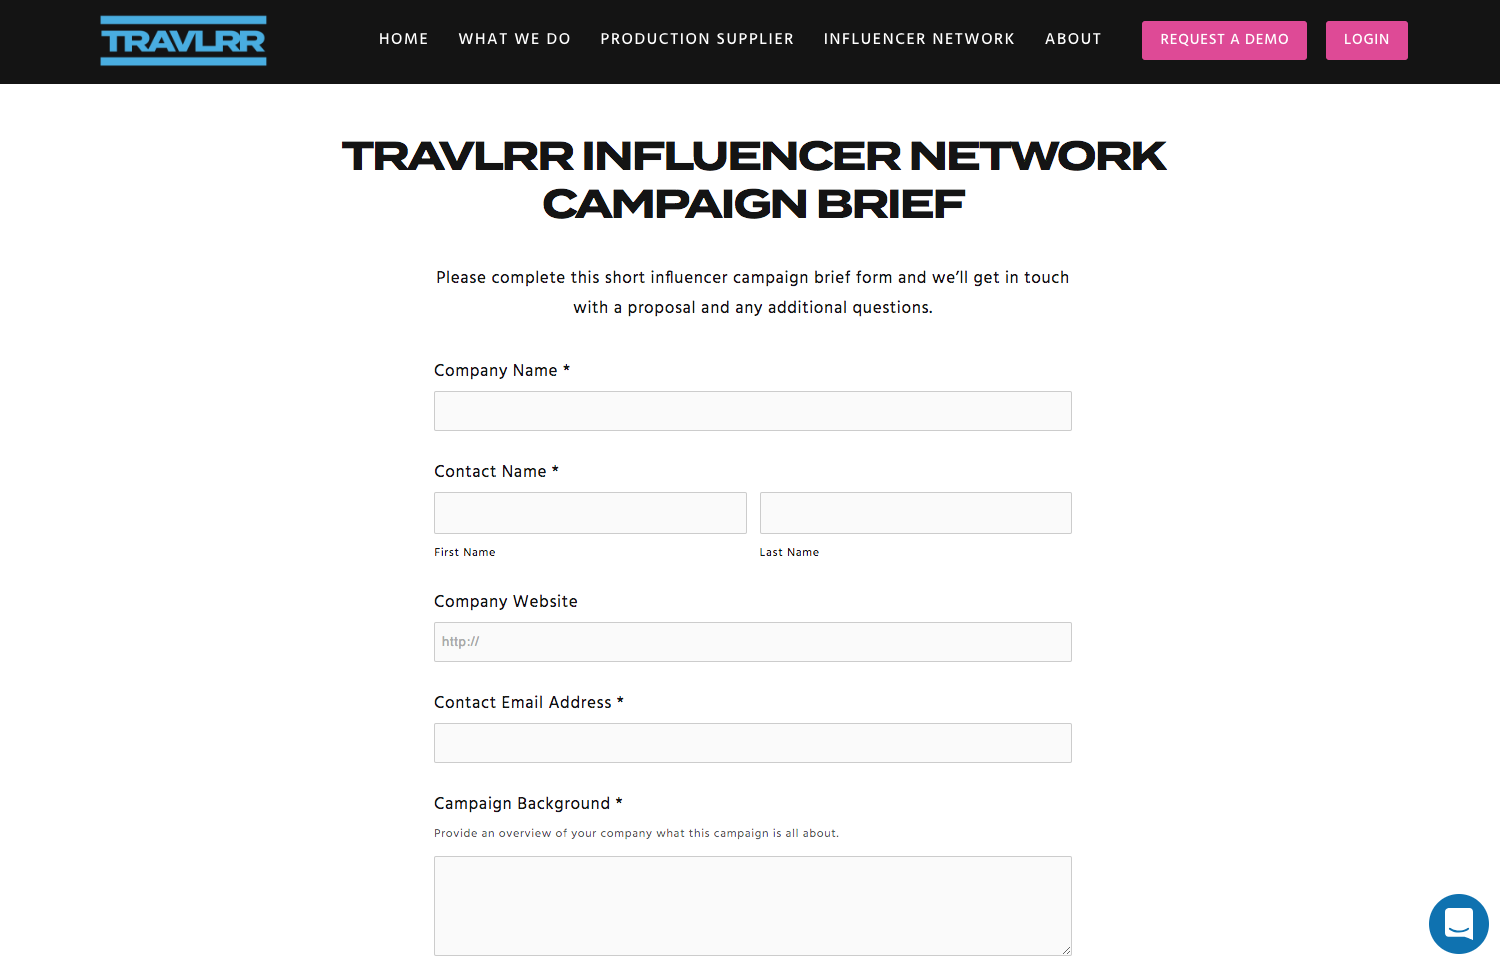 Travel Influencer briefing form